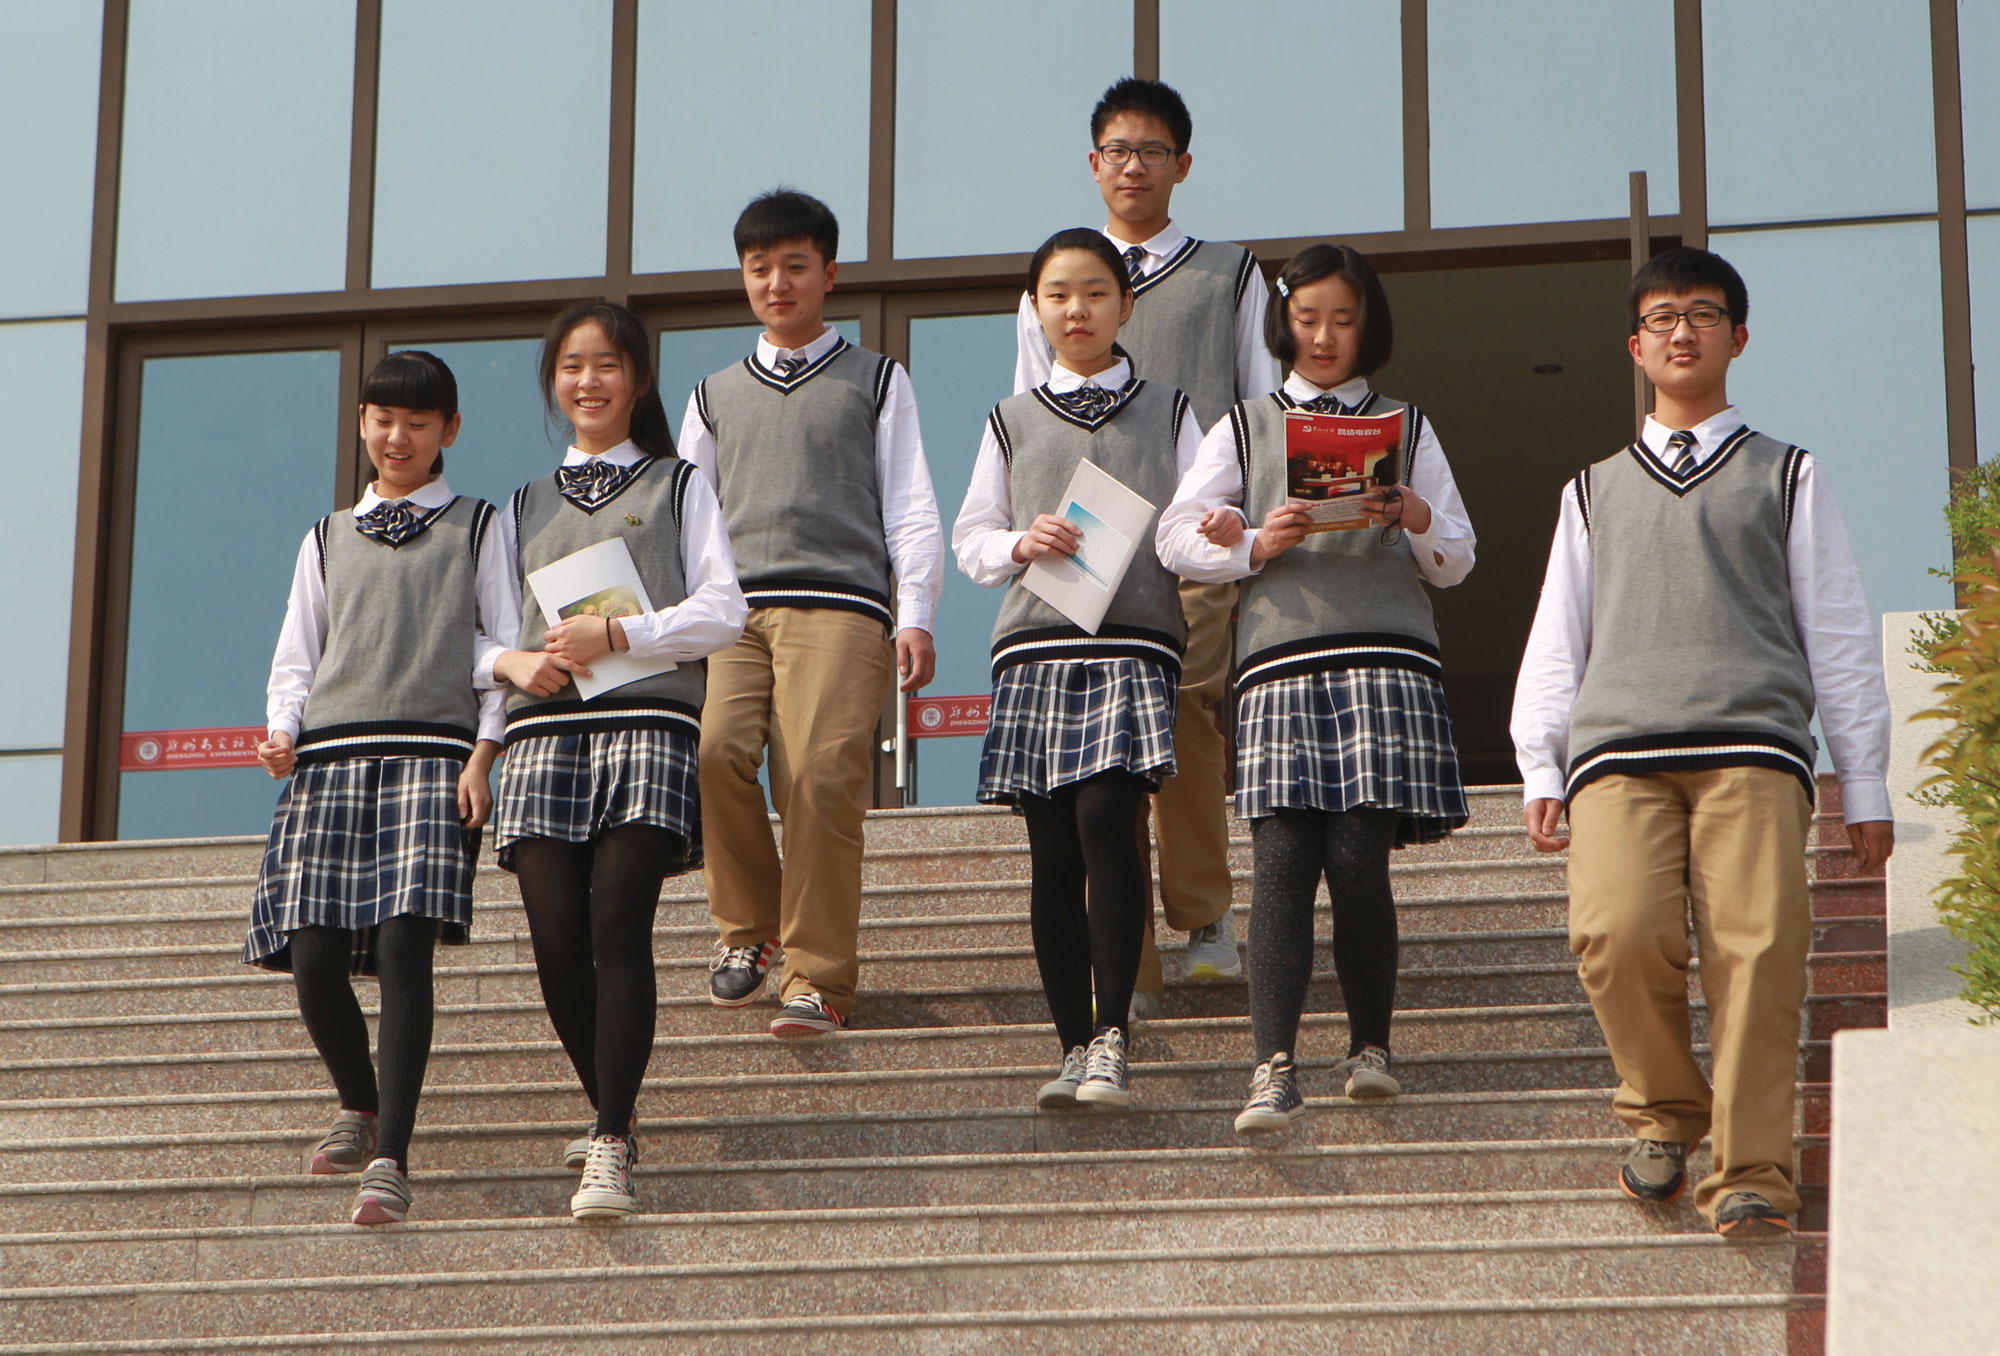 For Chinese students, followed by using smart forms